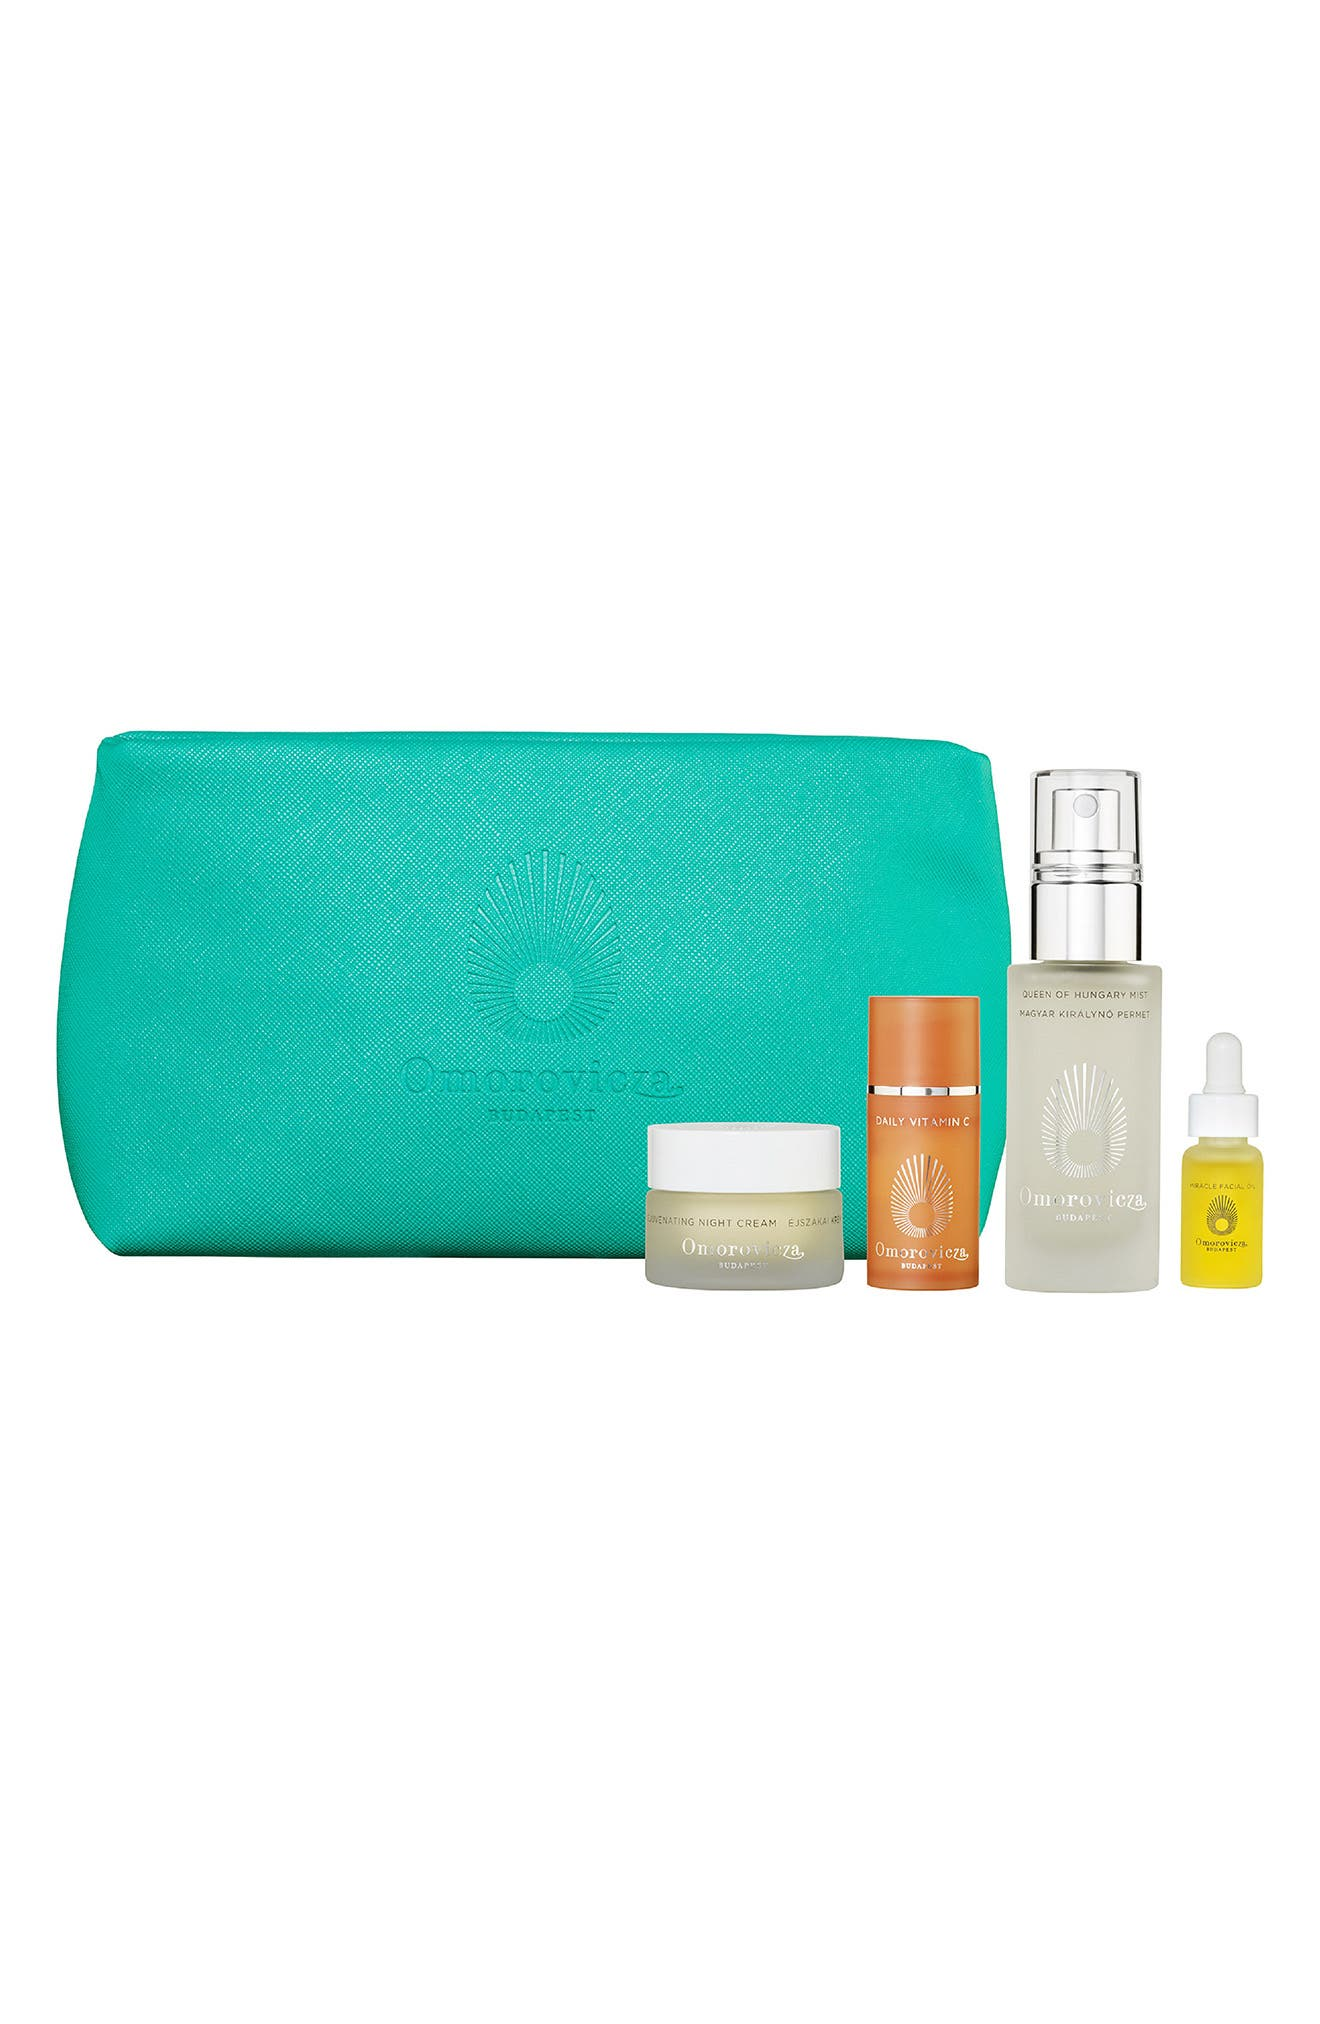 Travel Size Queen of Hungary Mist Set-$148 Value | Nordstrom